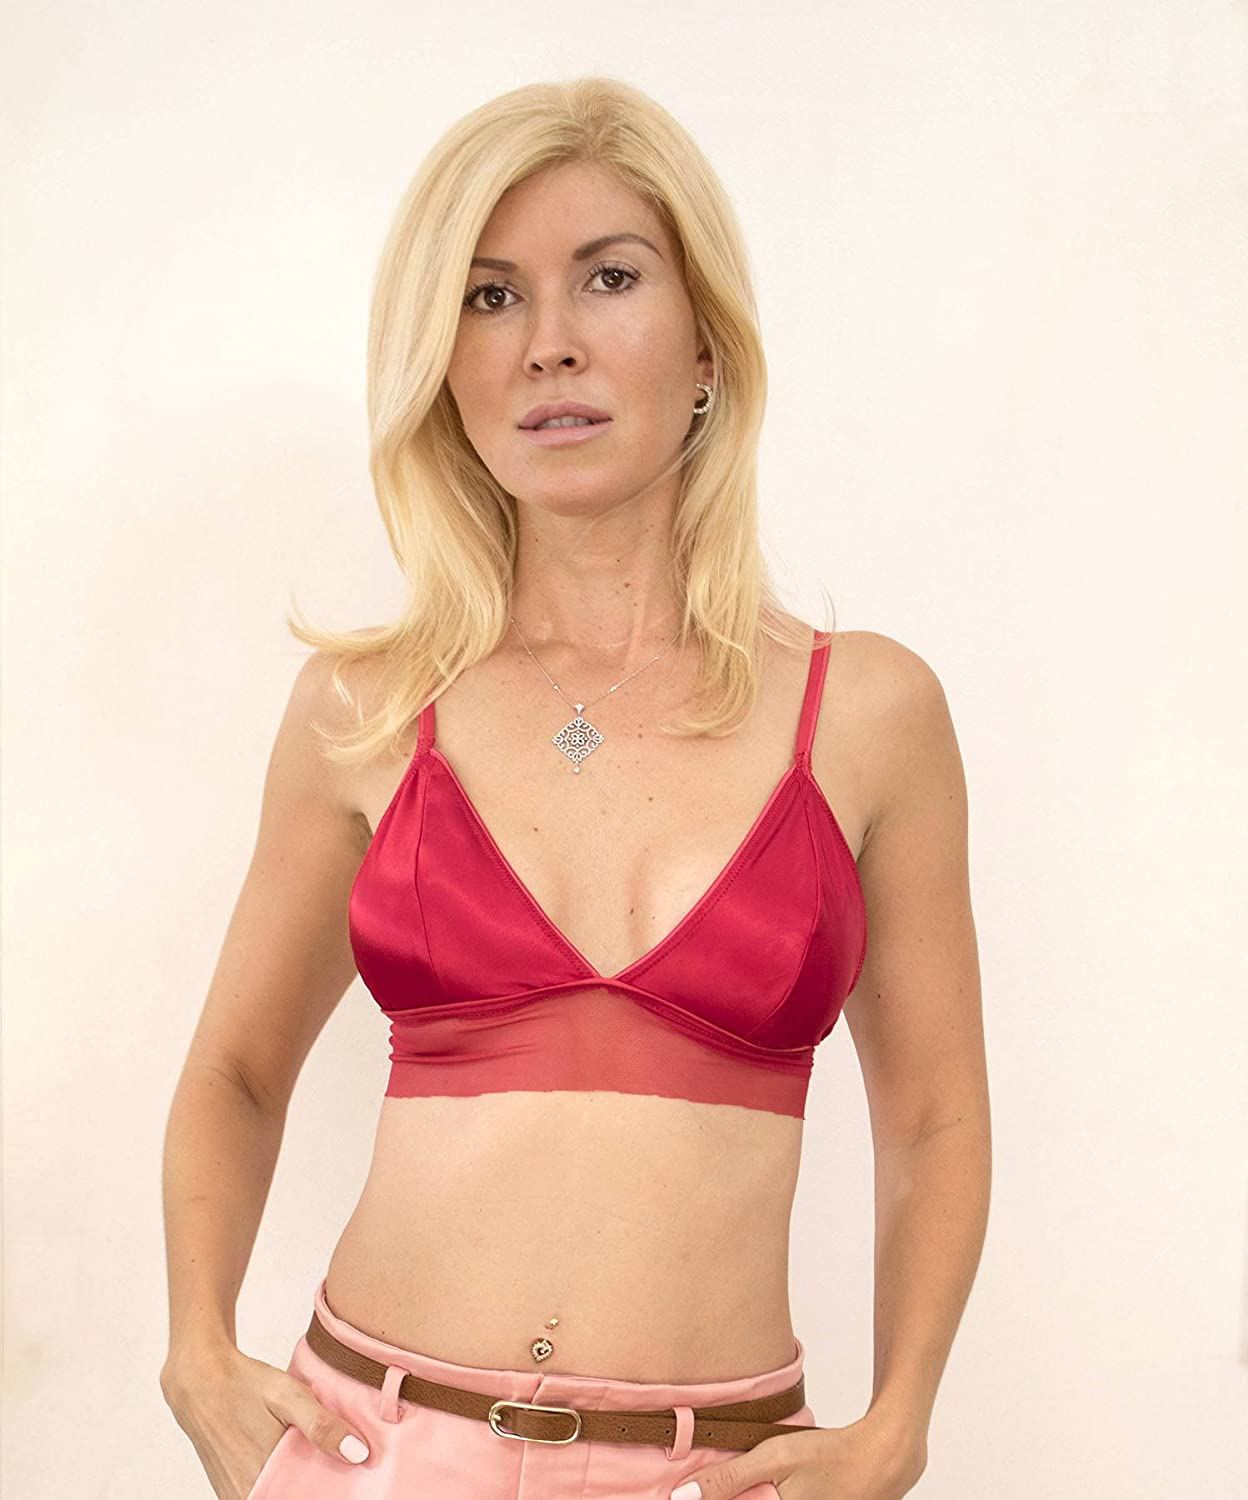 Red Silk Satin Bralette. Red Satin Bra. Silk Lingerie. Silk Underwear. Bra. Red Lingeire